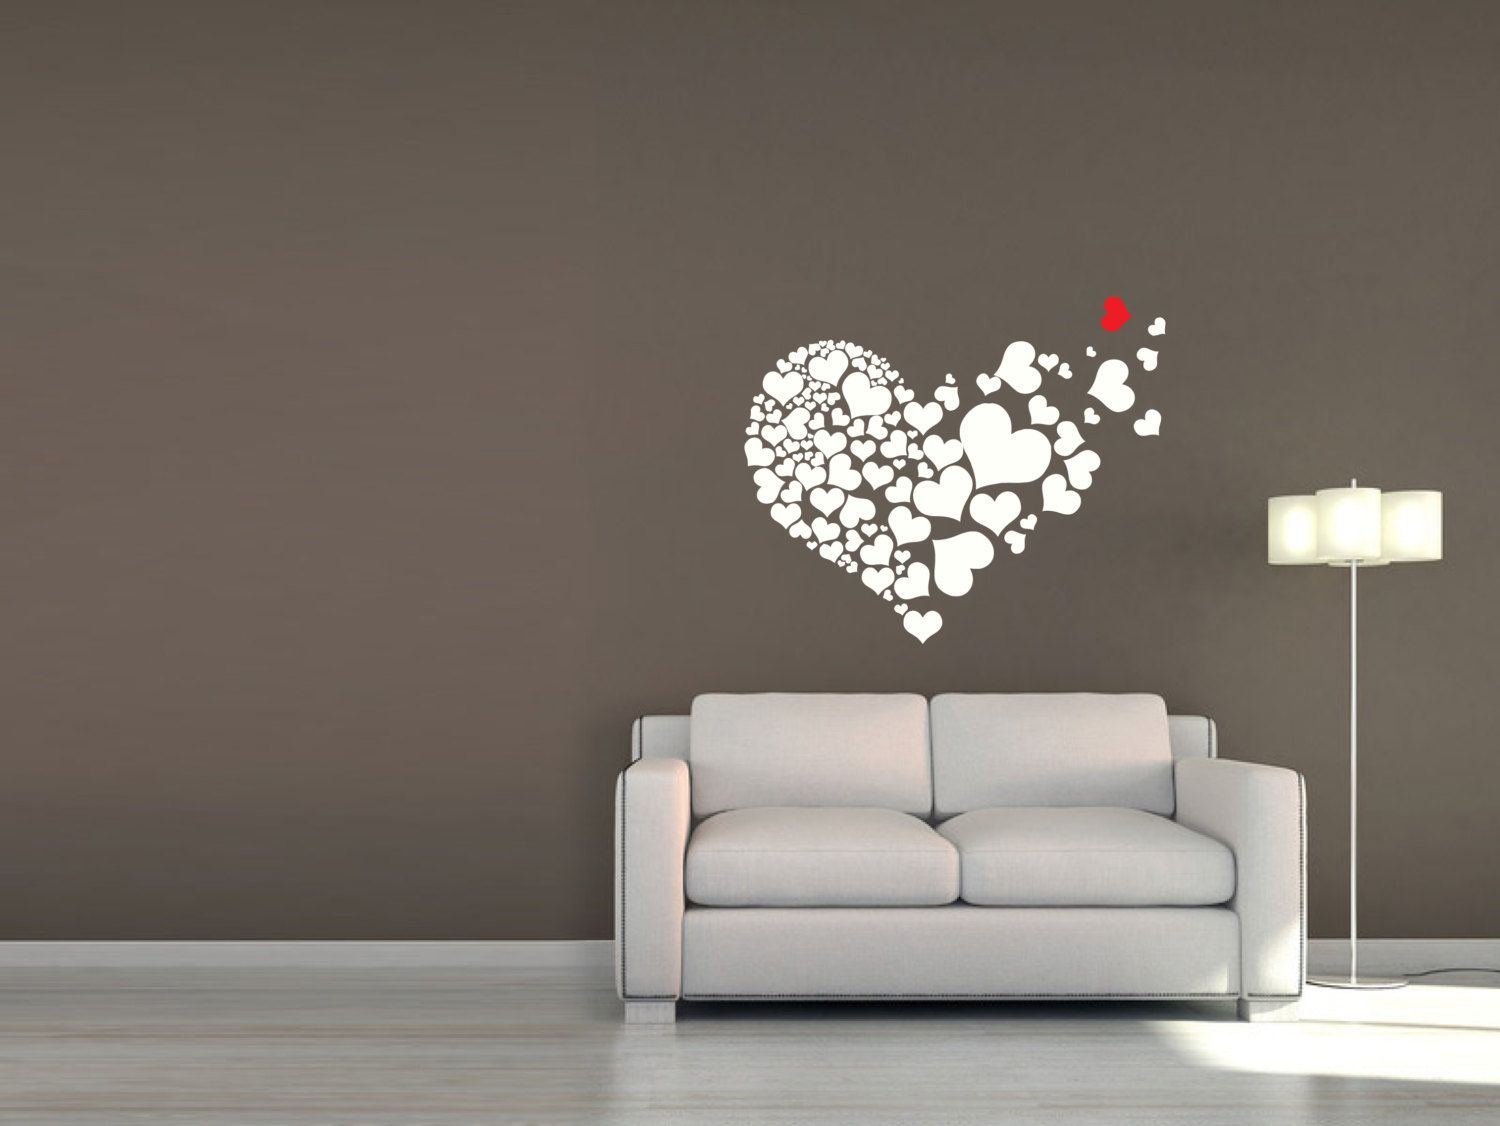 Wall Sticker Love Hearts | Removable Heart Design In Black Grey White Or  Red | Romantic Bedroom, Loungeroom Wall Decal